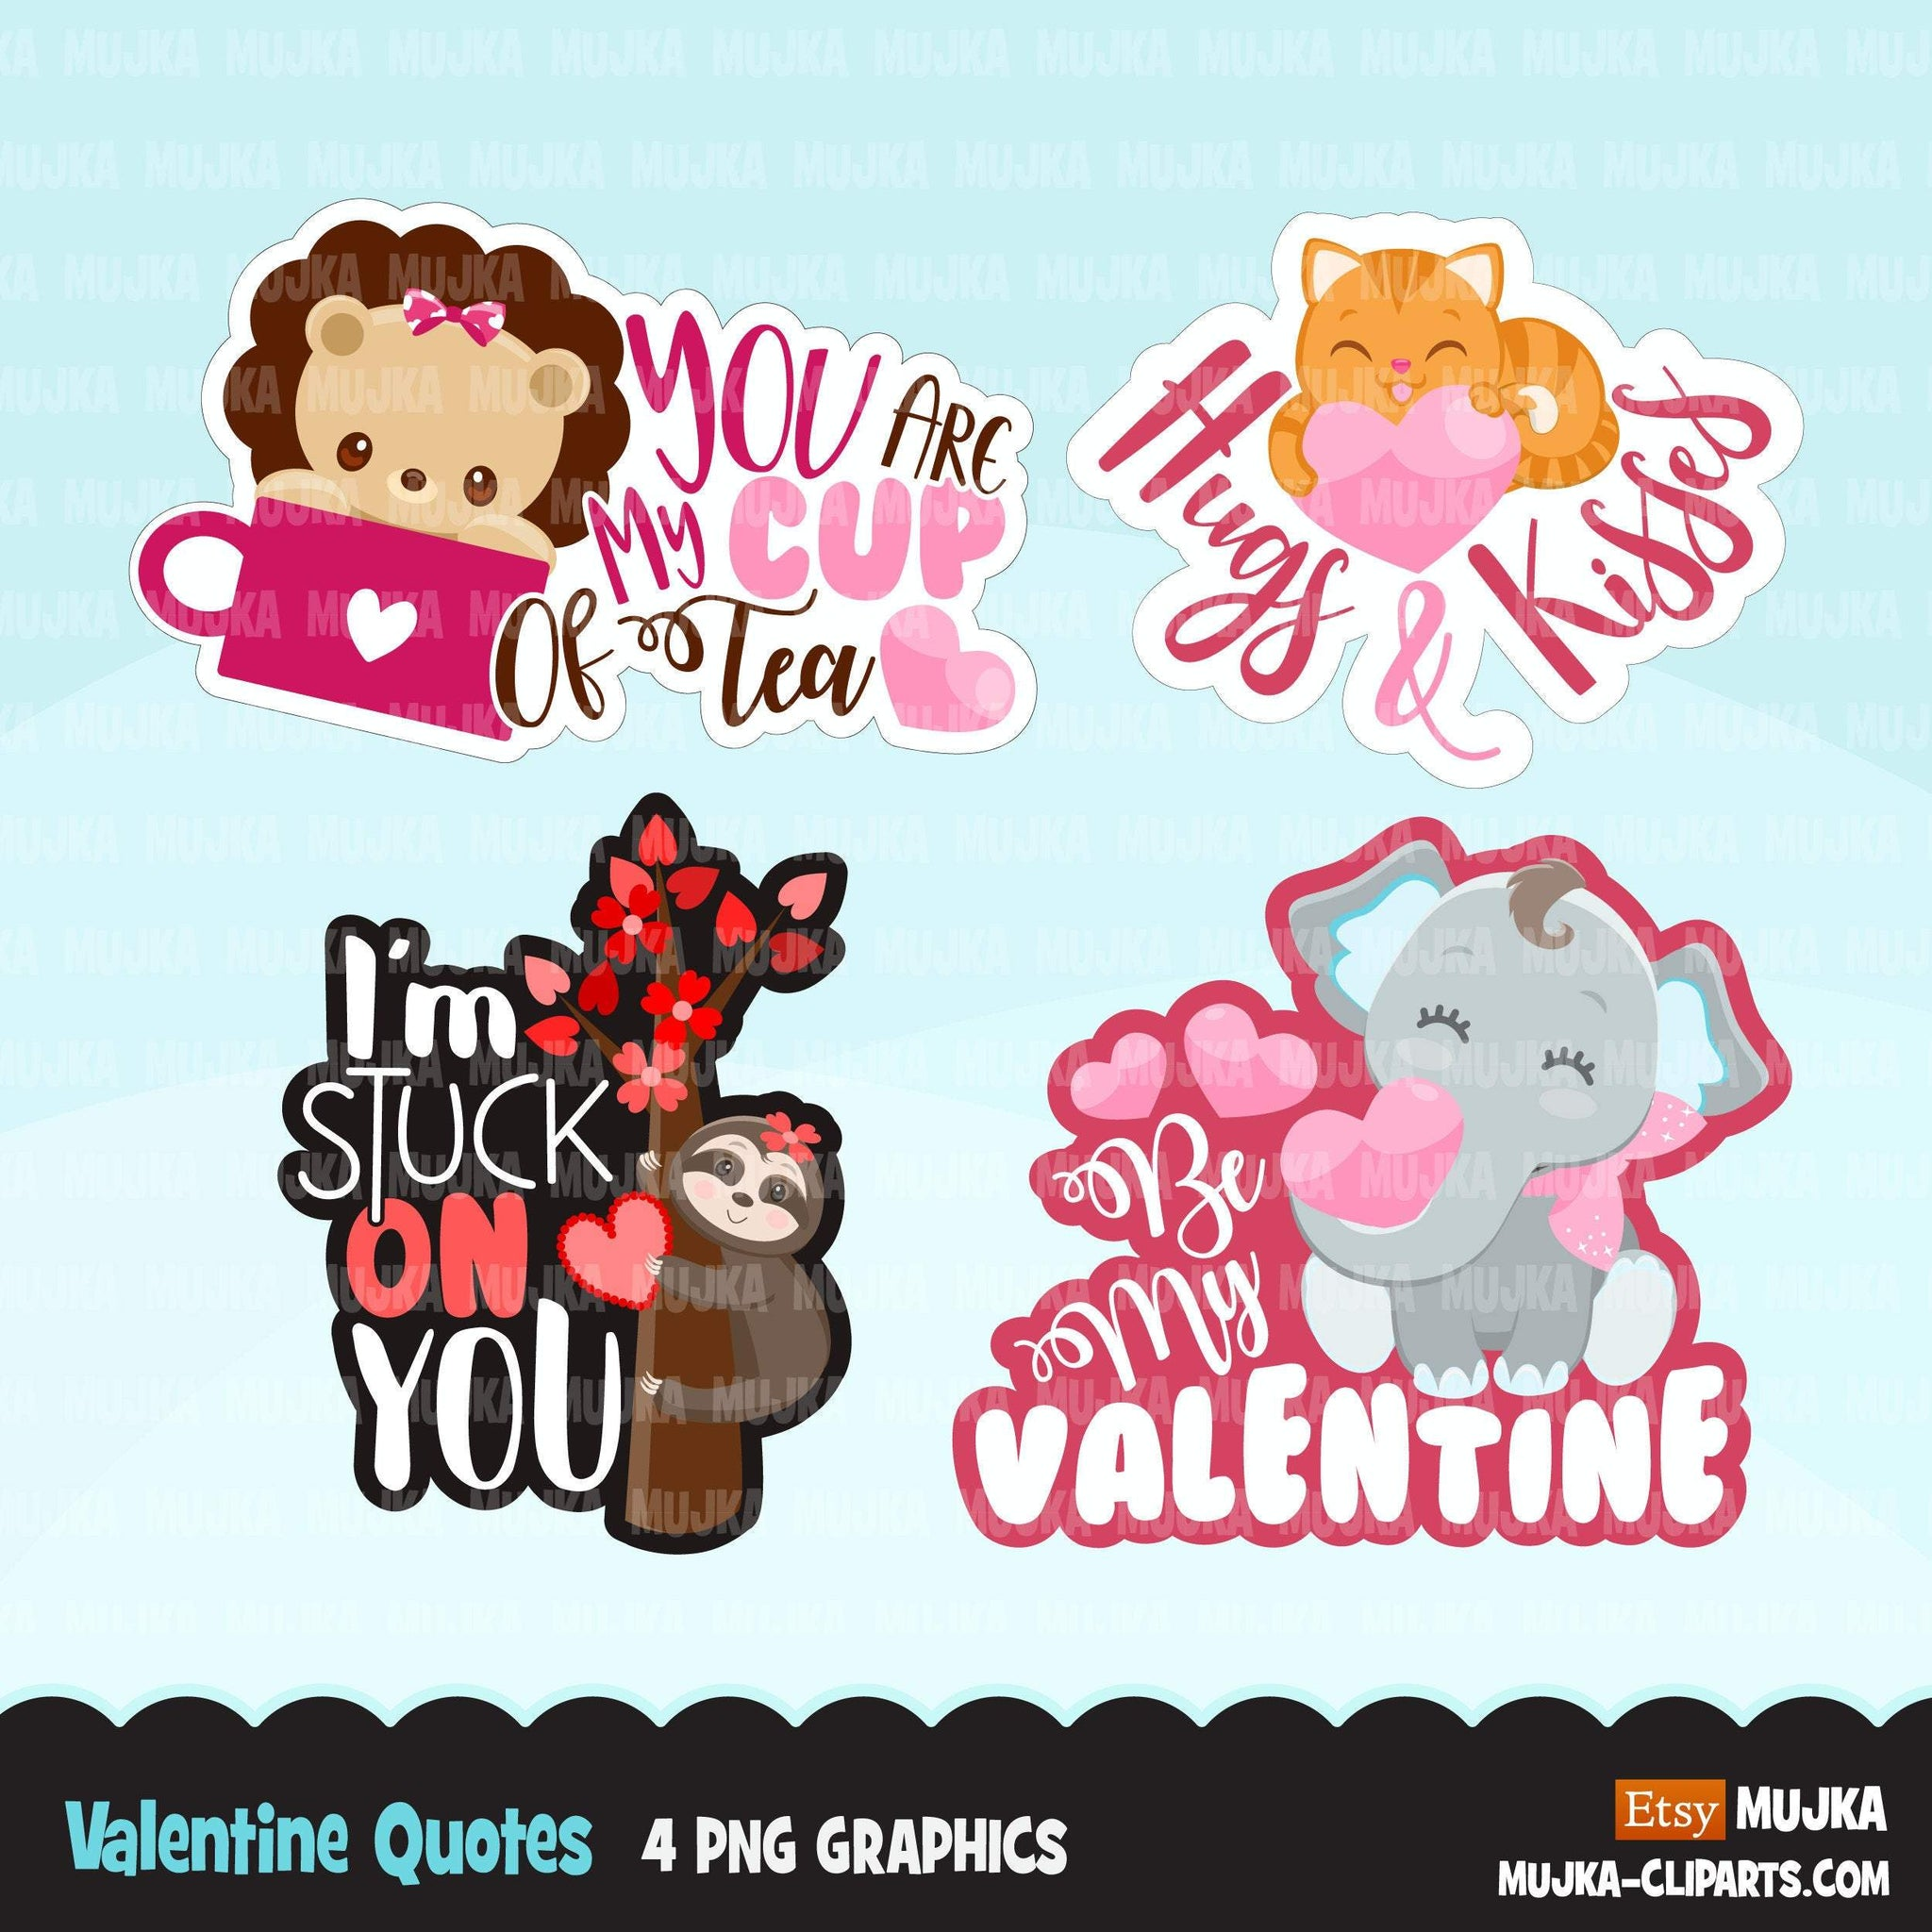 Valentine Quotes Clipart, be my valentine, I am stuck on you, you are my cup of tea graphics, Valentine's Day commercial use clip art